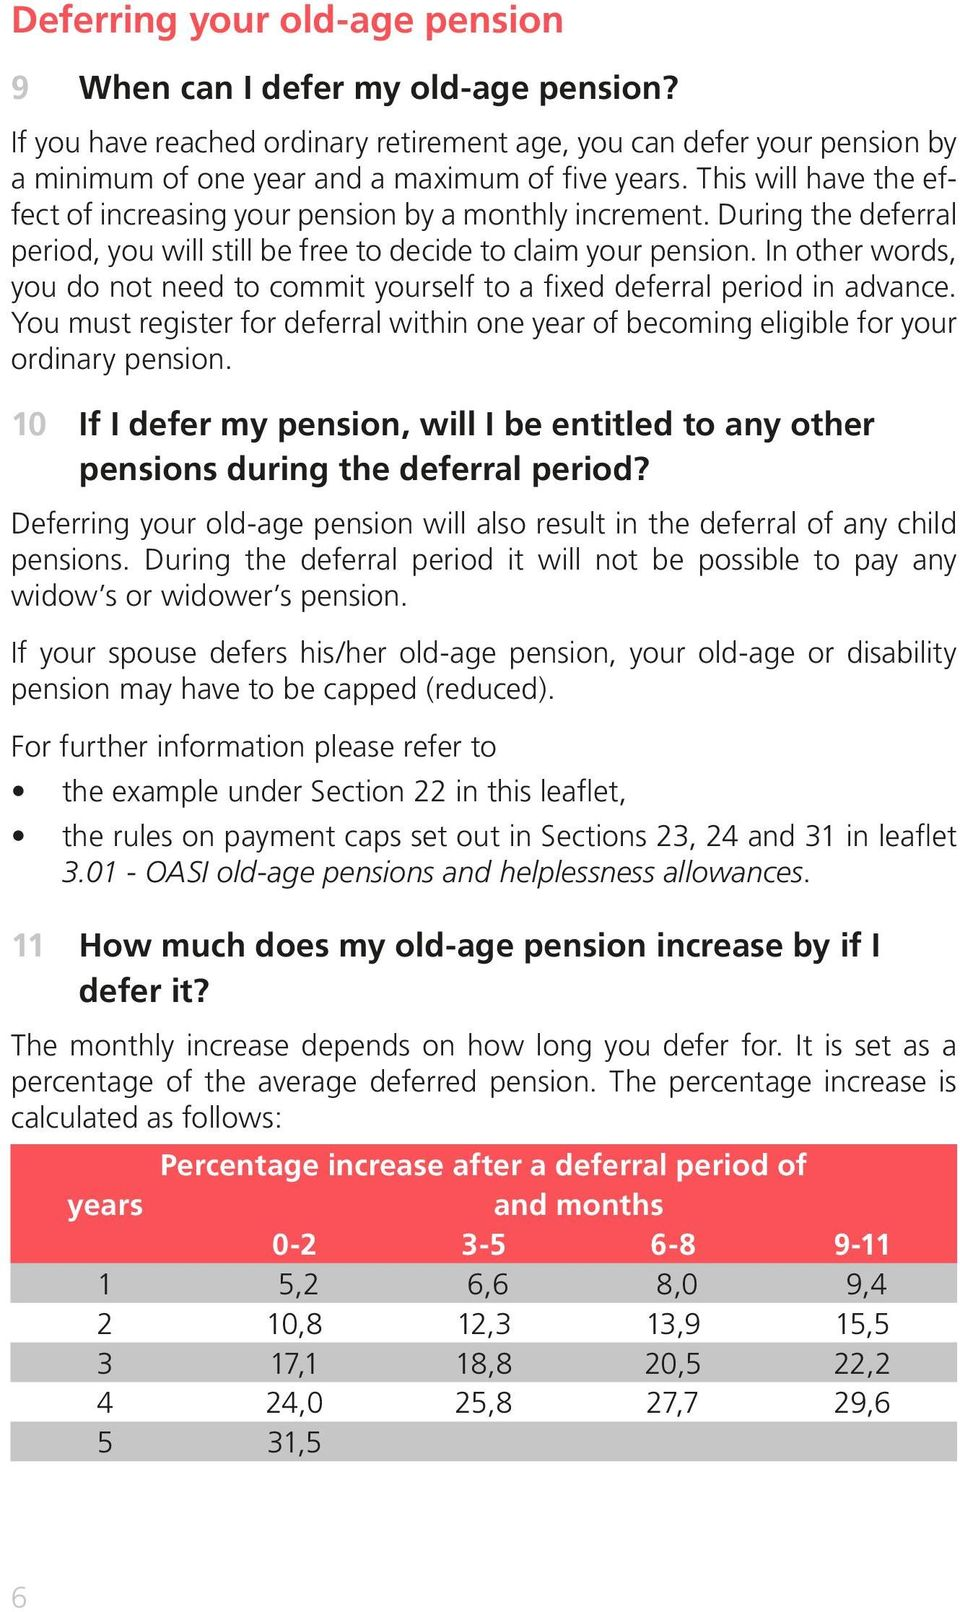 In other words, you do not need to commit yourself to a fixed deferral period in advance. You must register for deferral within one year of becoming eligible for your ordinary pension.